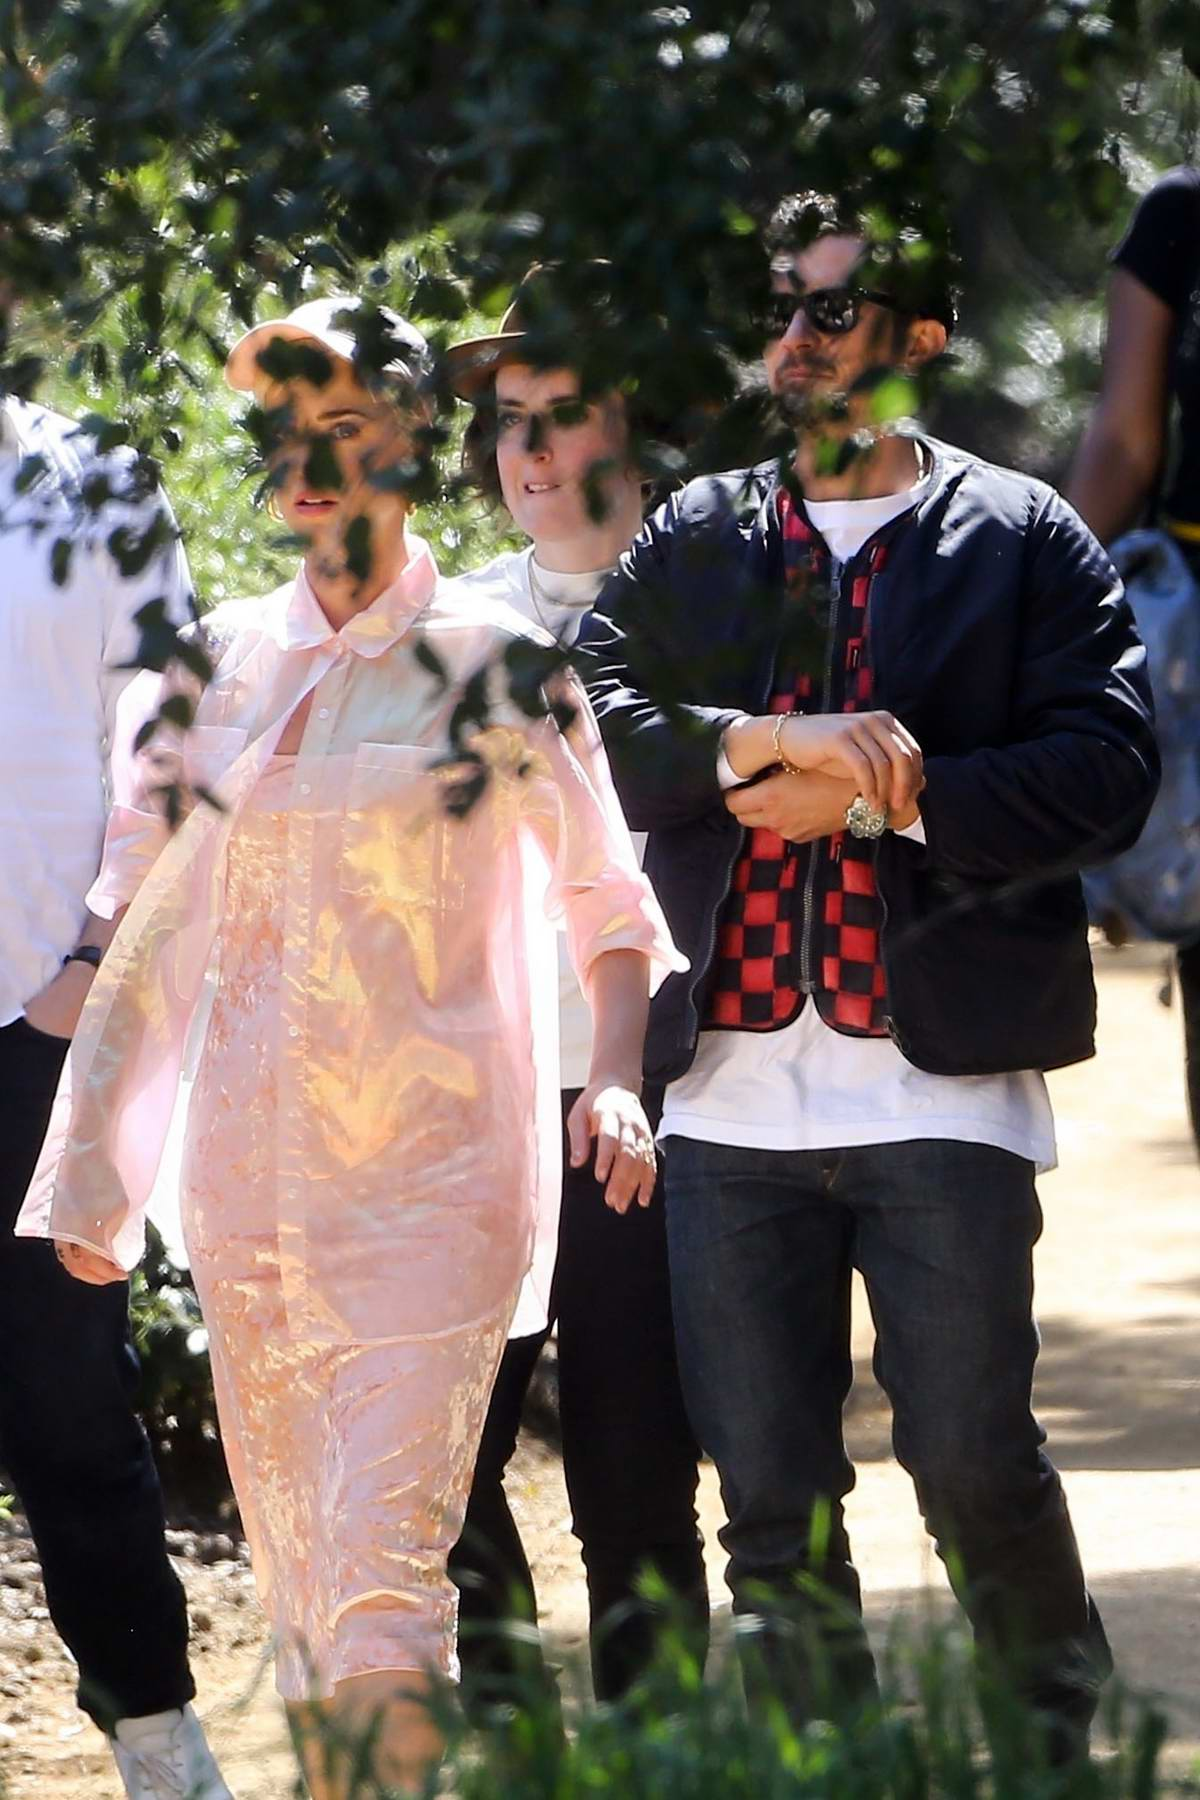 Katy Perry and Orlando Bloom attend services at Kanye West's church in Los Angeles